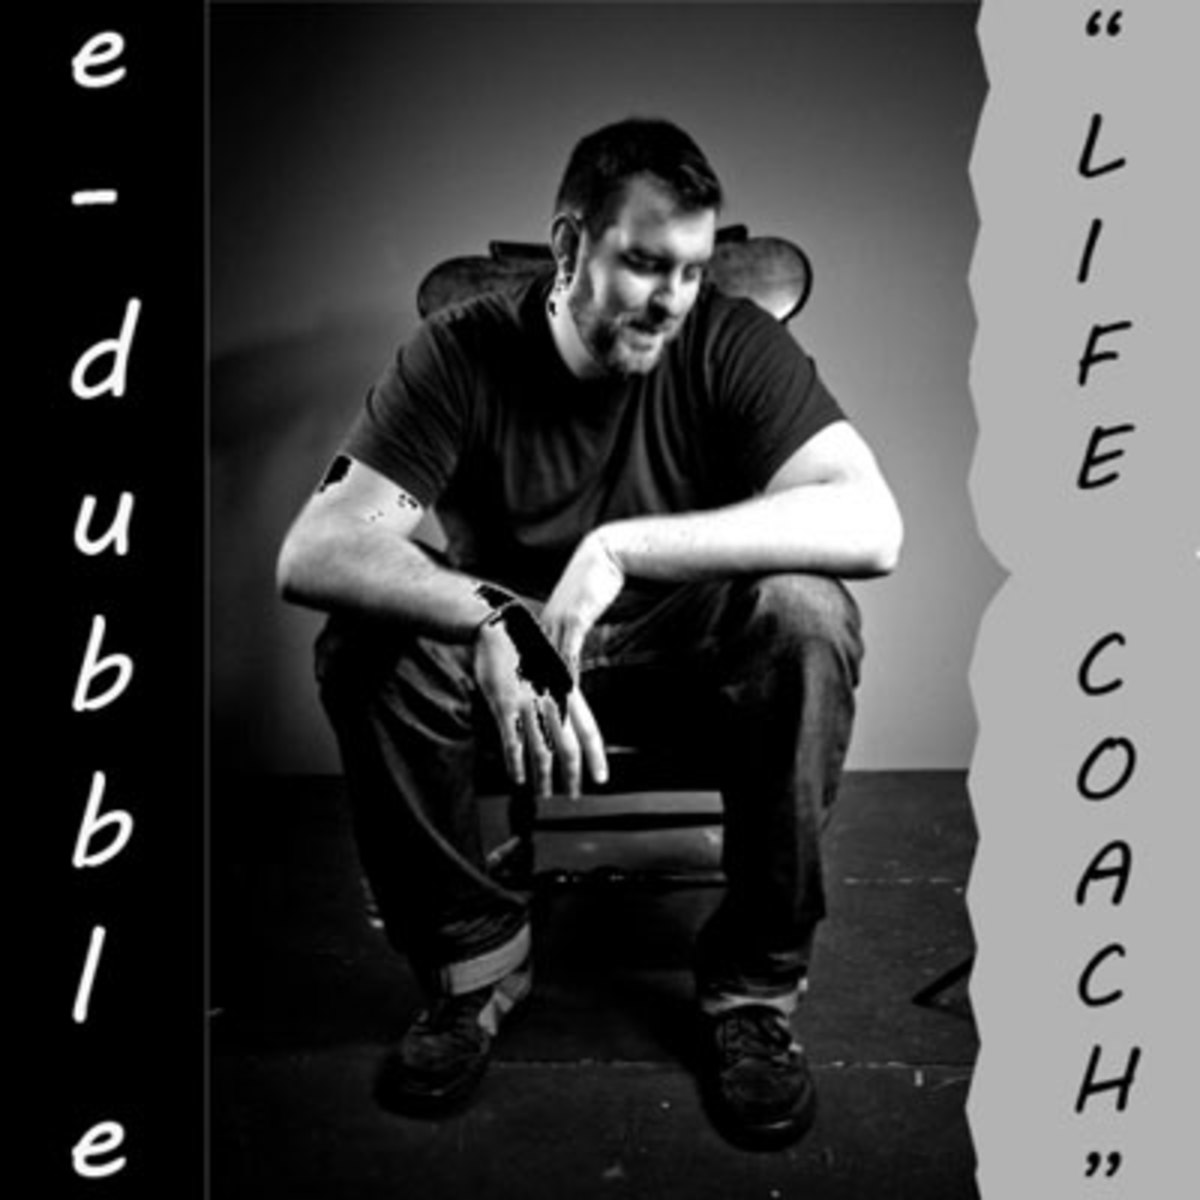 edubble-lifecoach.jpg